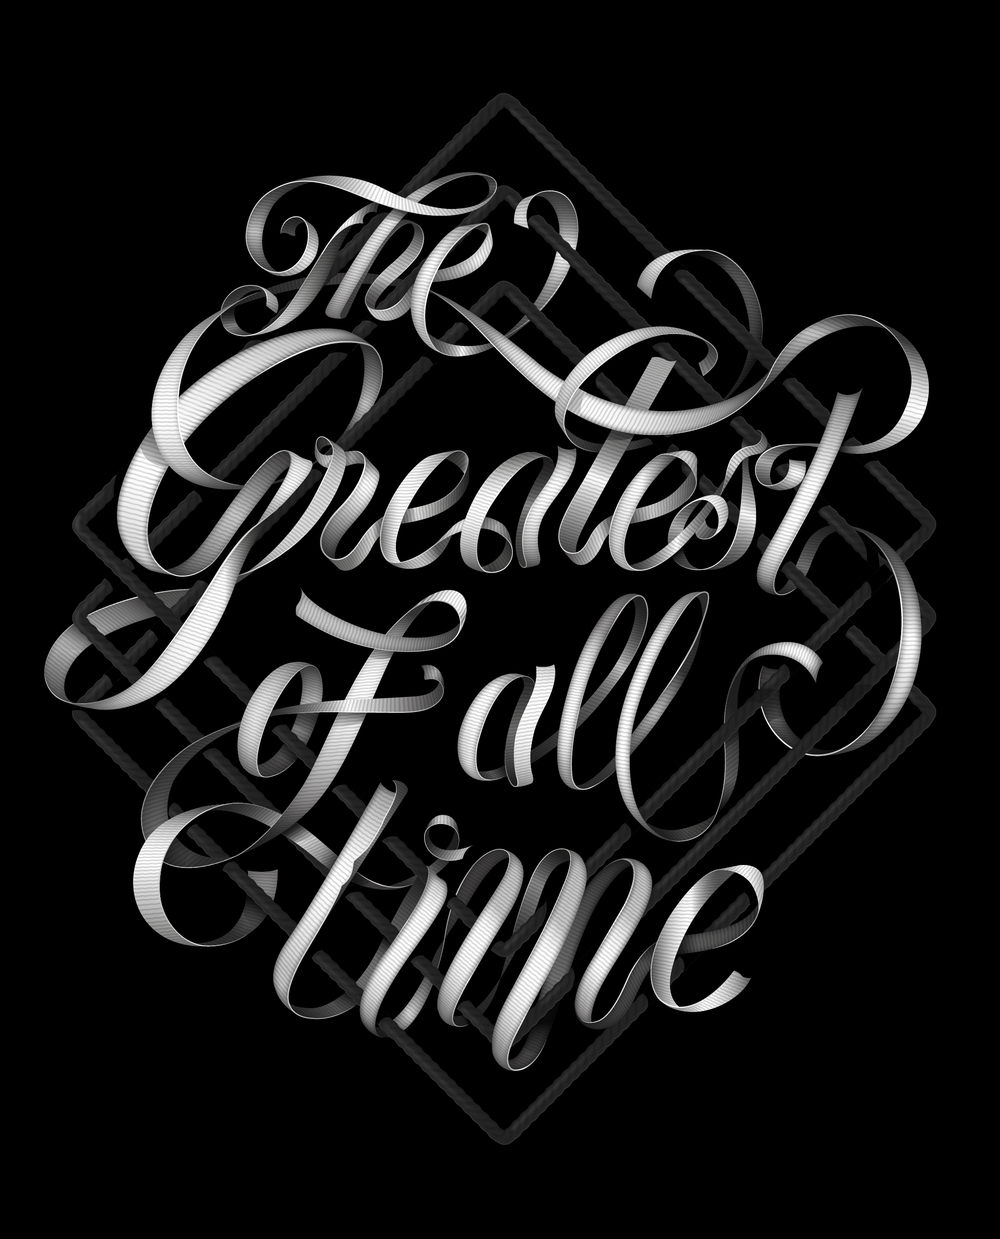 THE GREATEST OF ALL TIME T-shirt graphic - Tribute to Muhammad Ali. Lettering / Illustration / Fashion.